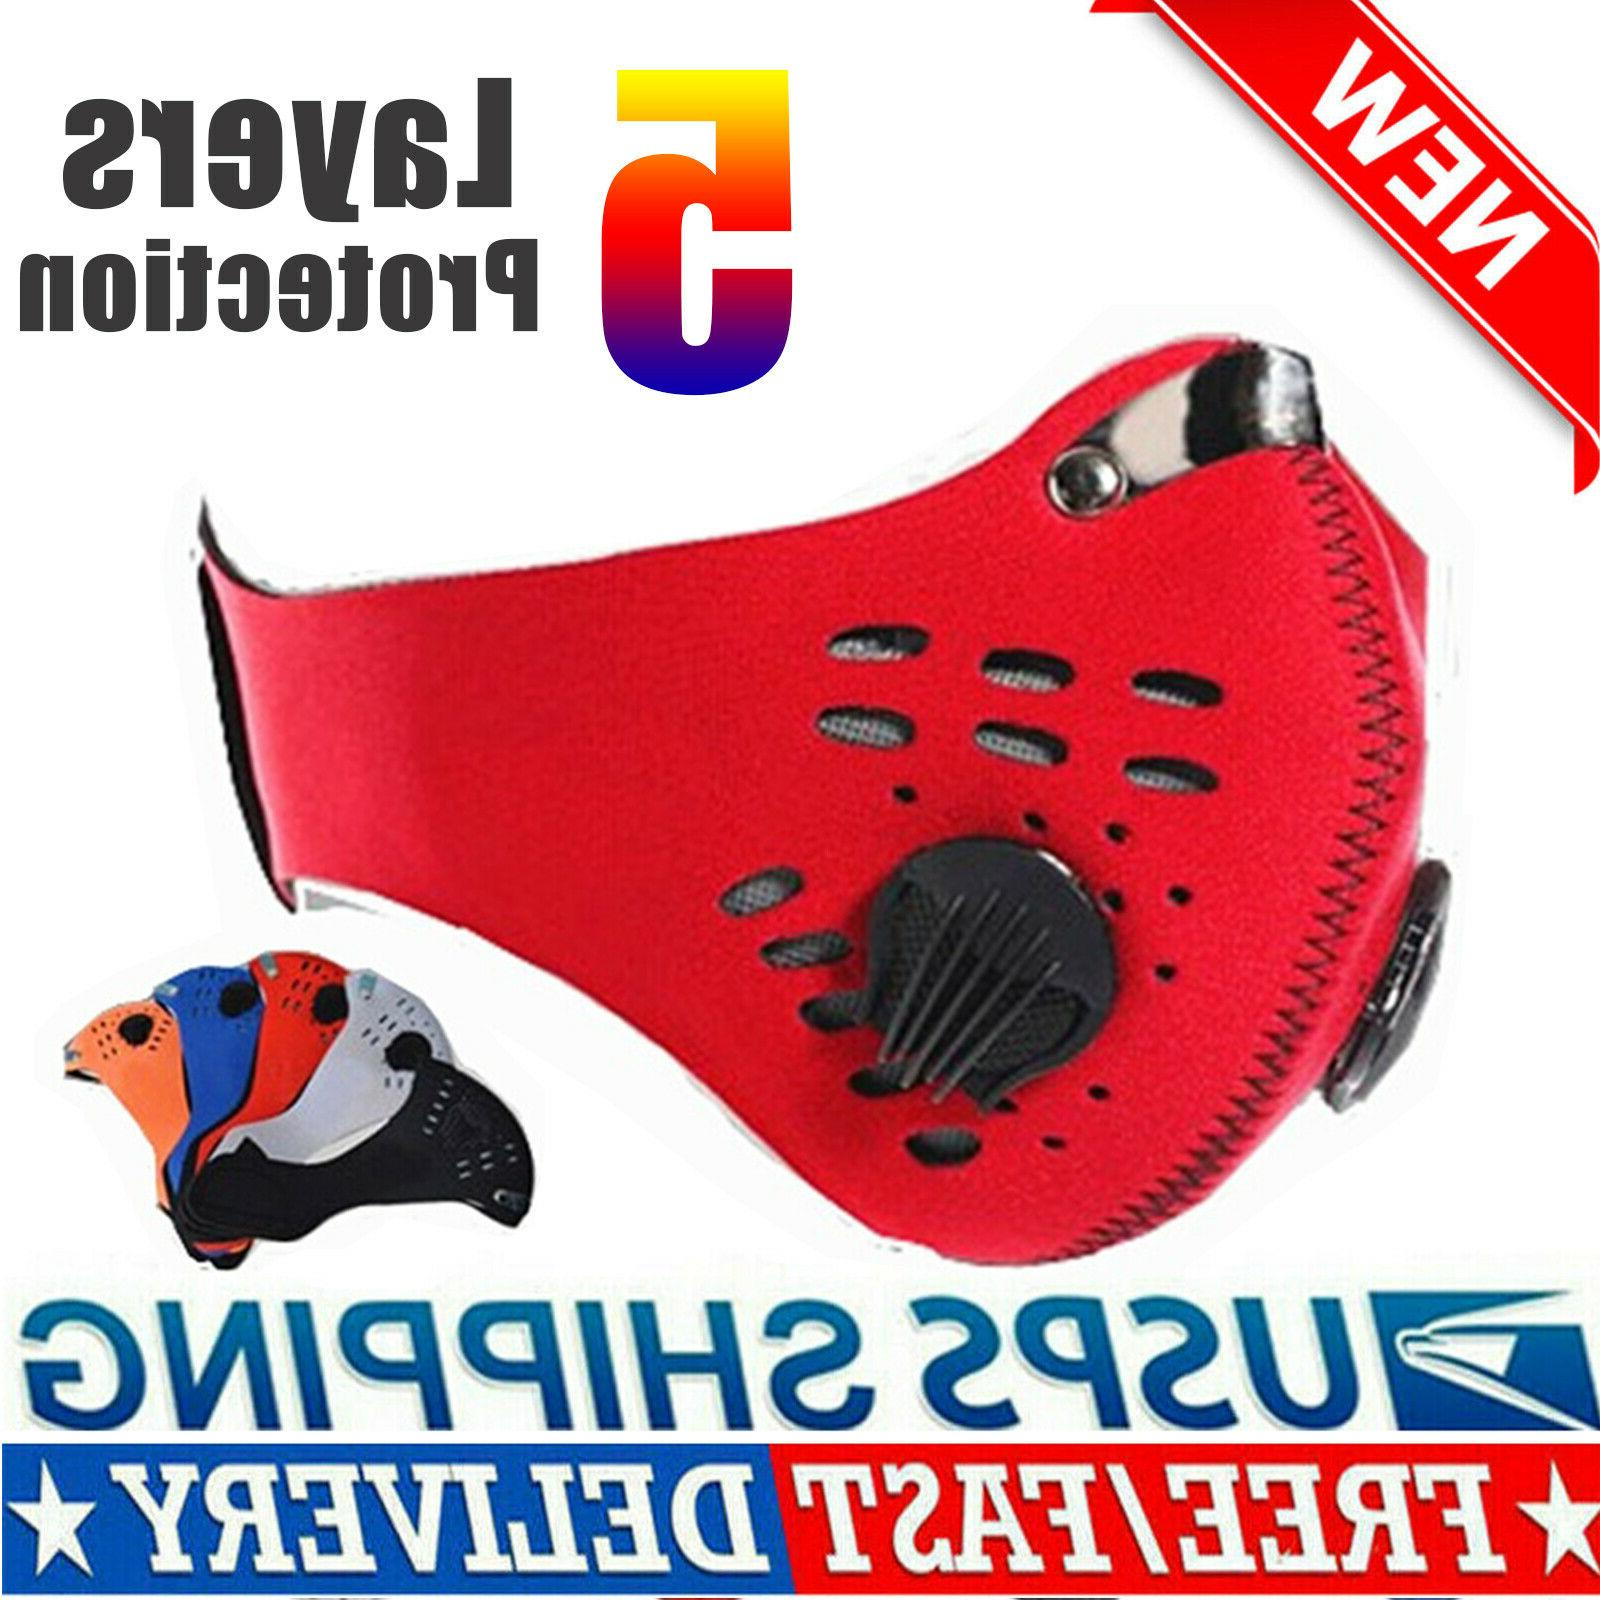 Face Mask Reusable Cycling Cover Dual Valves Washable +1 Act